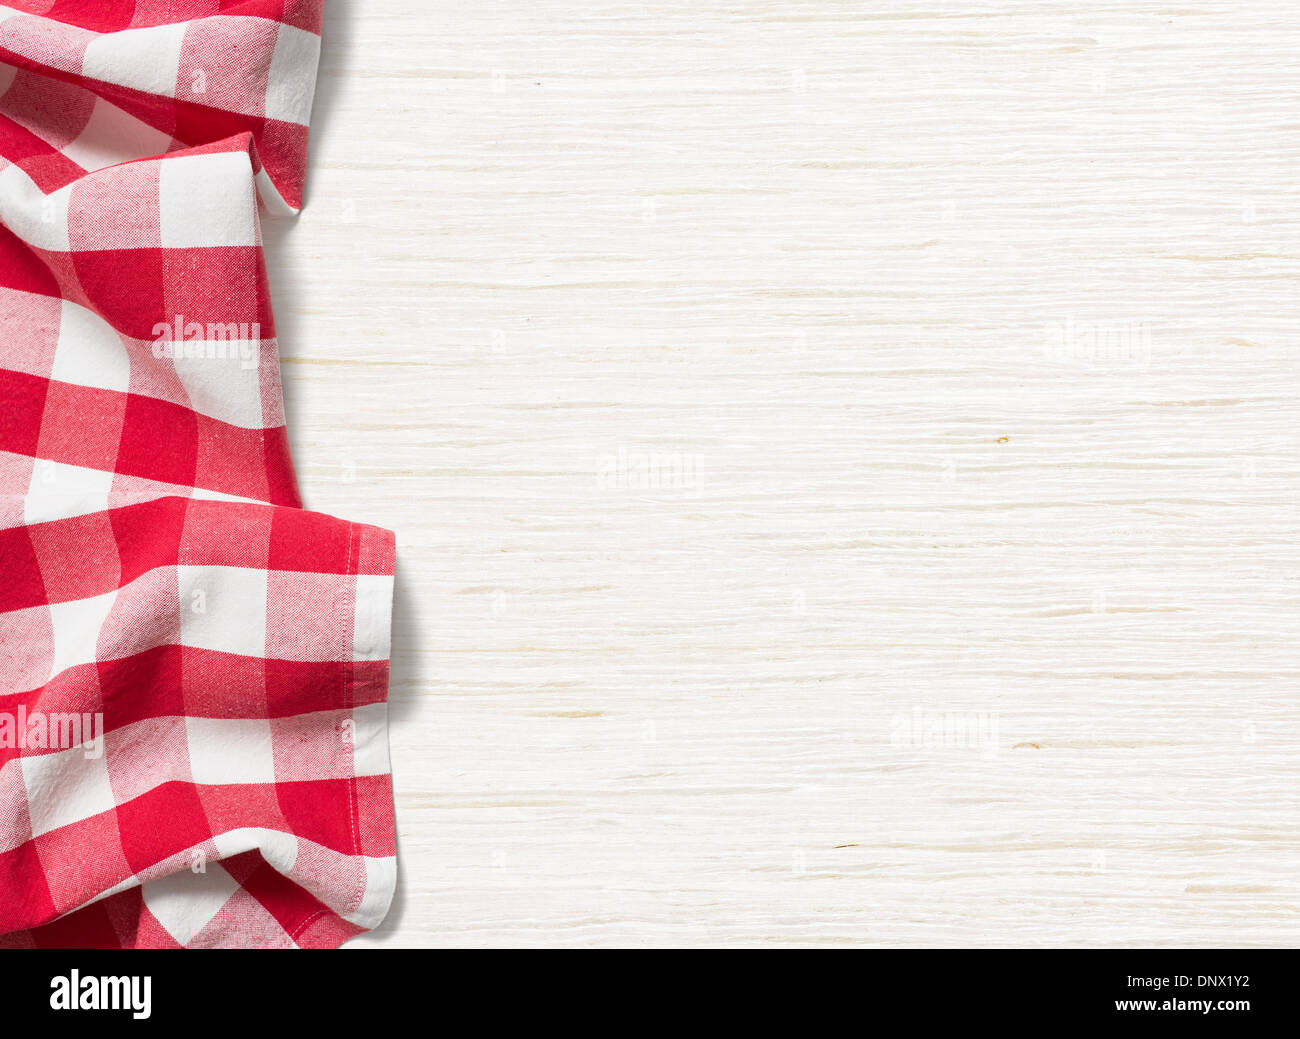 red folded tablecloth over bleached wooden table - Stock Image